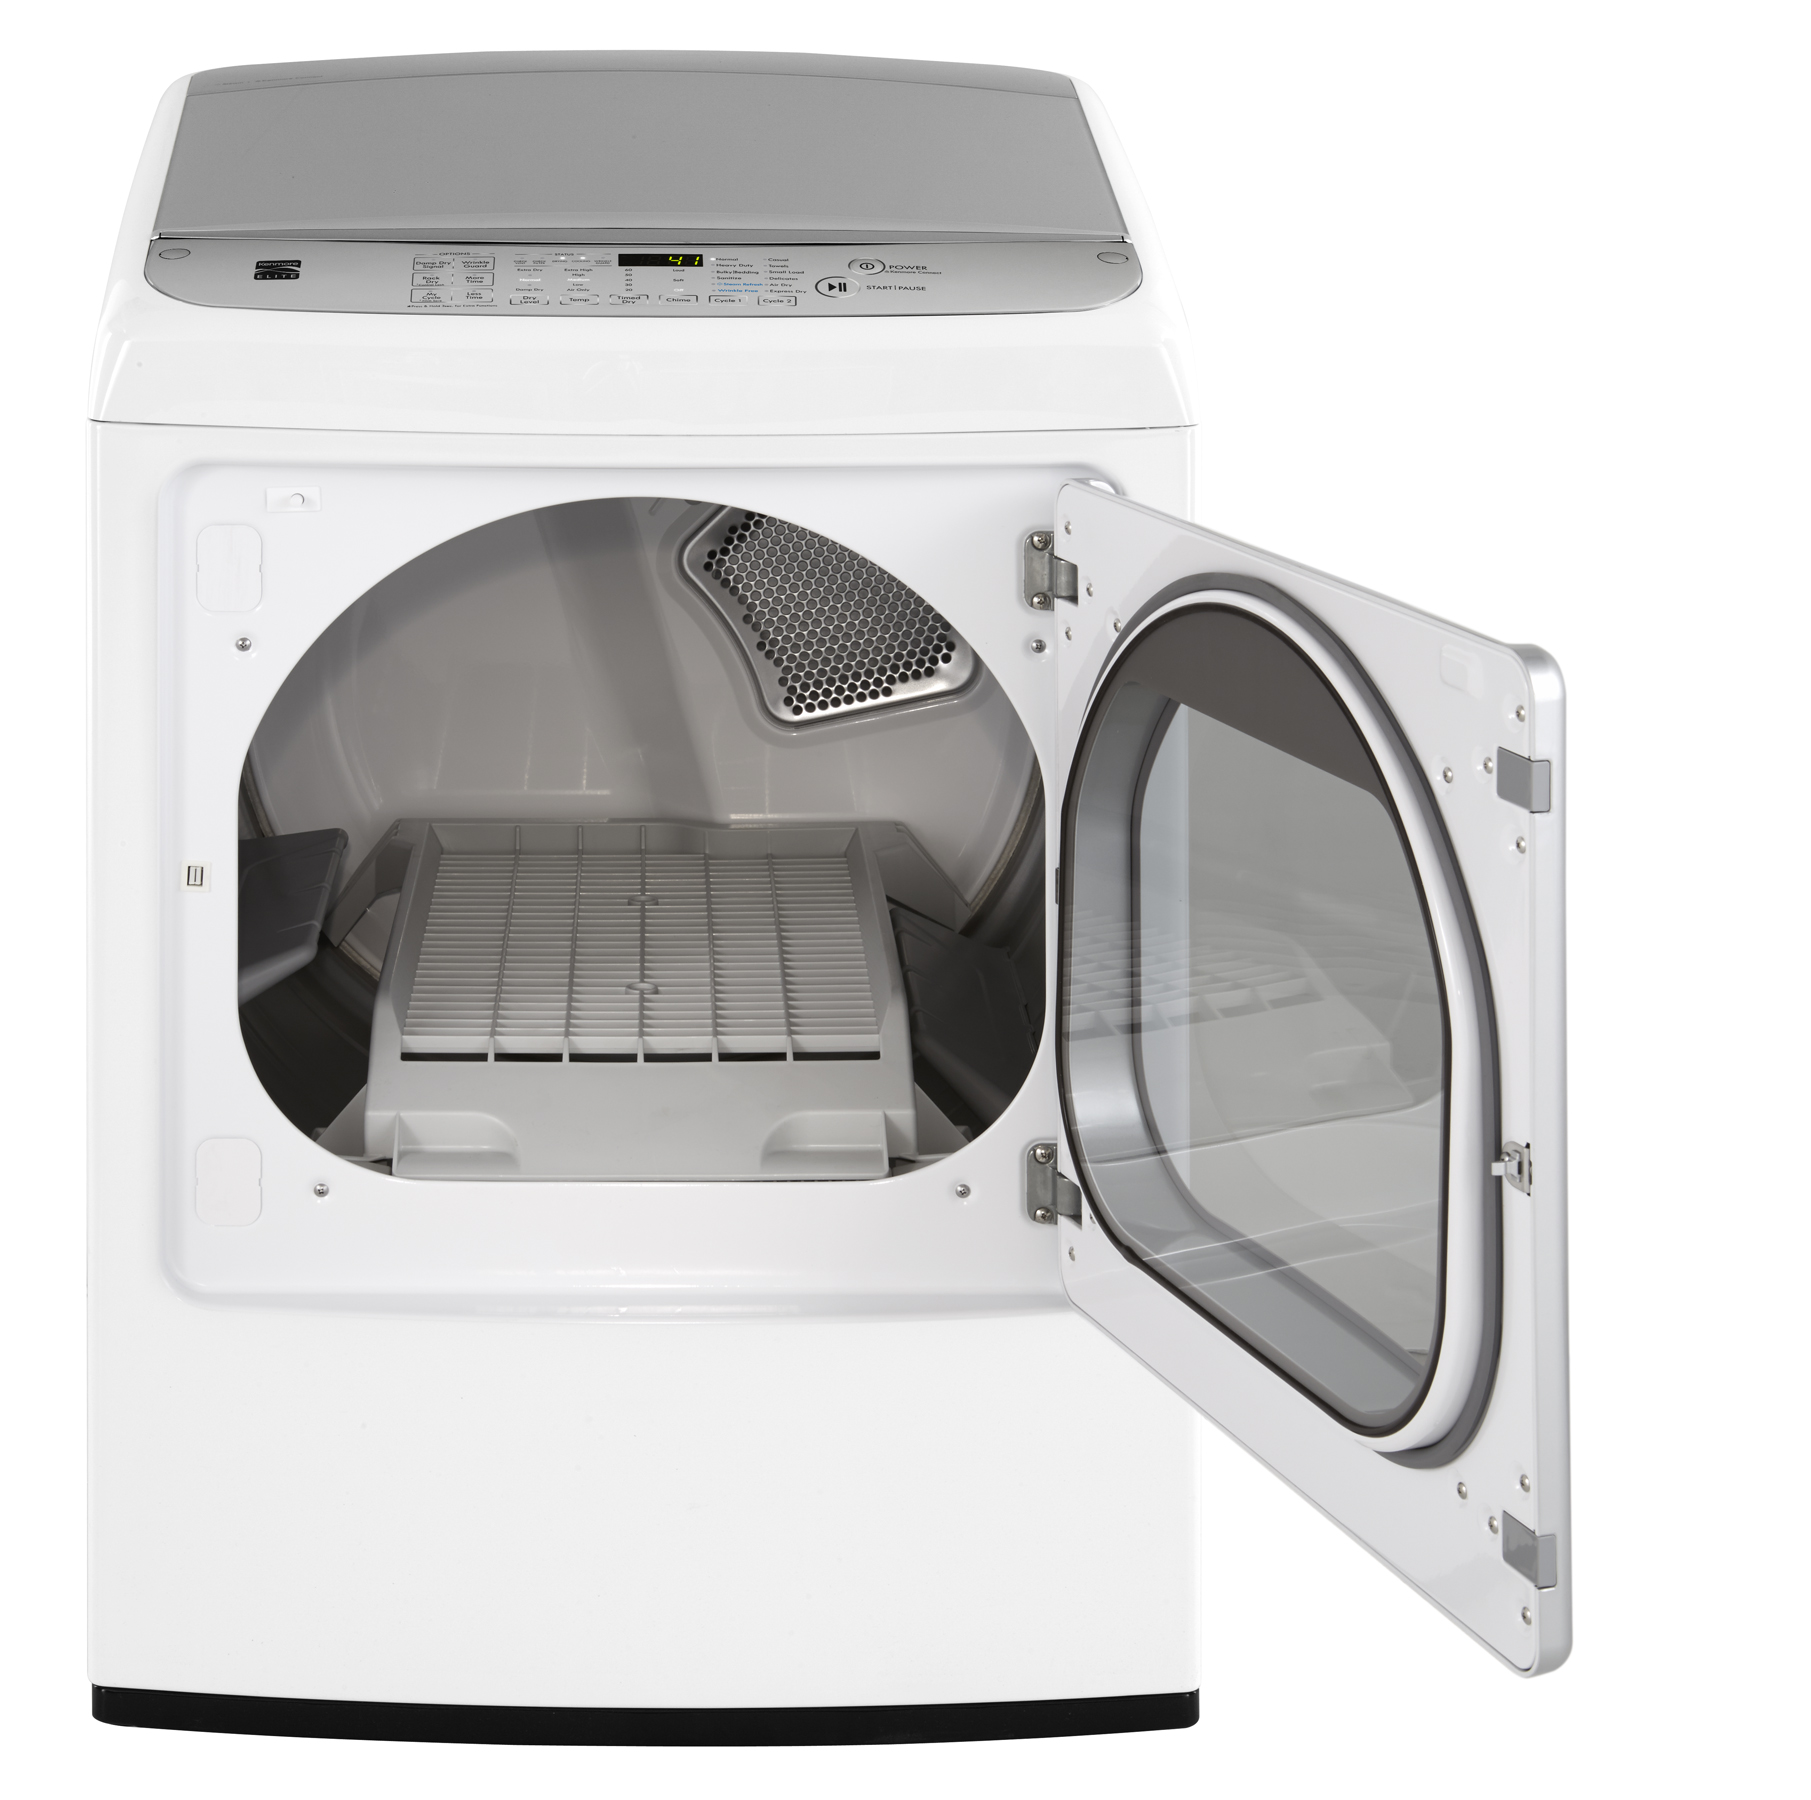 Kenmore Elite 7.3 cu. ft. Electric Dryer - White